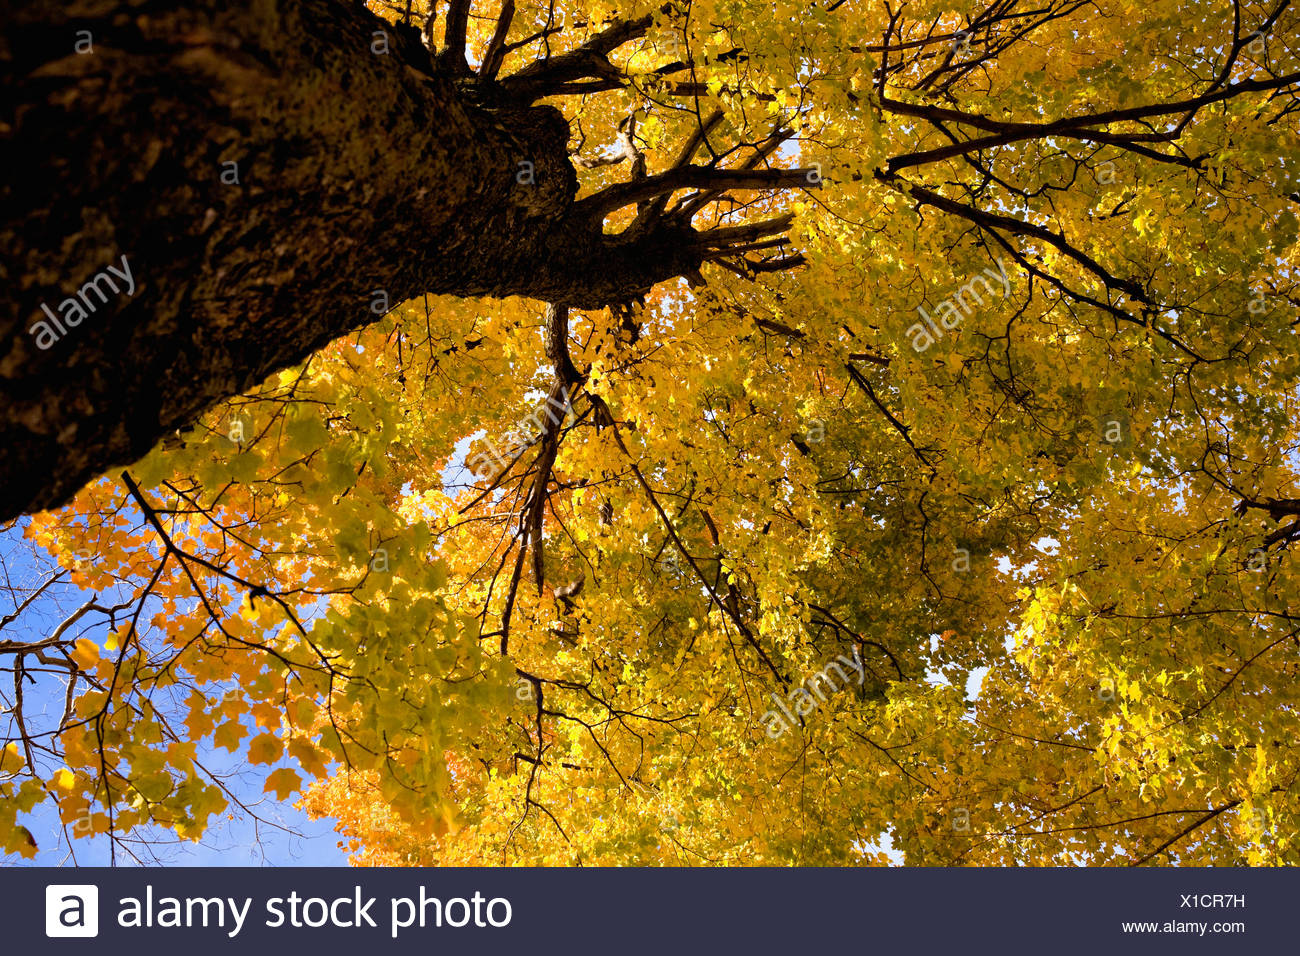 Yellow leaves on a tree - Stock Image